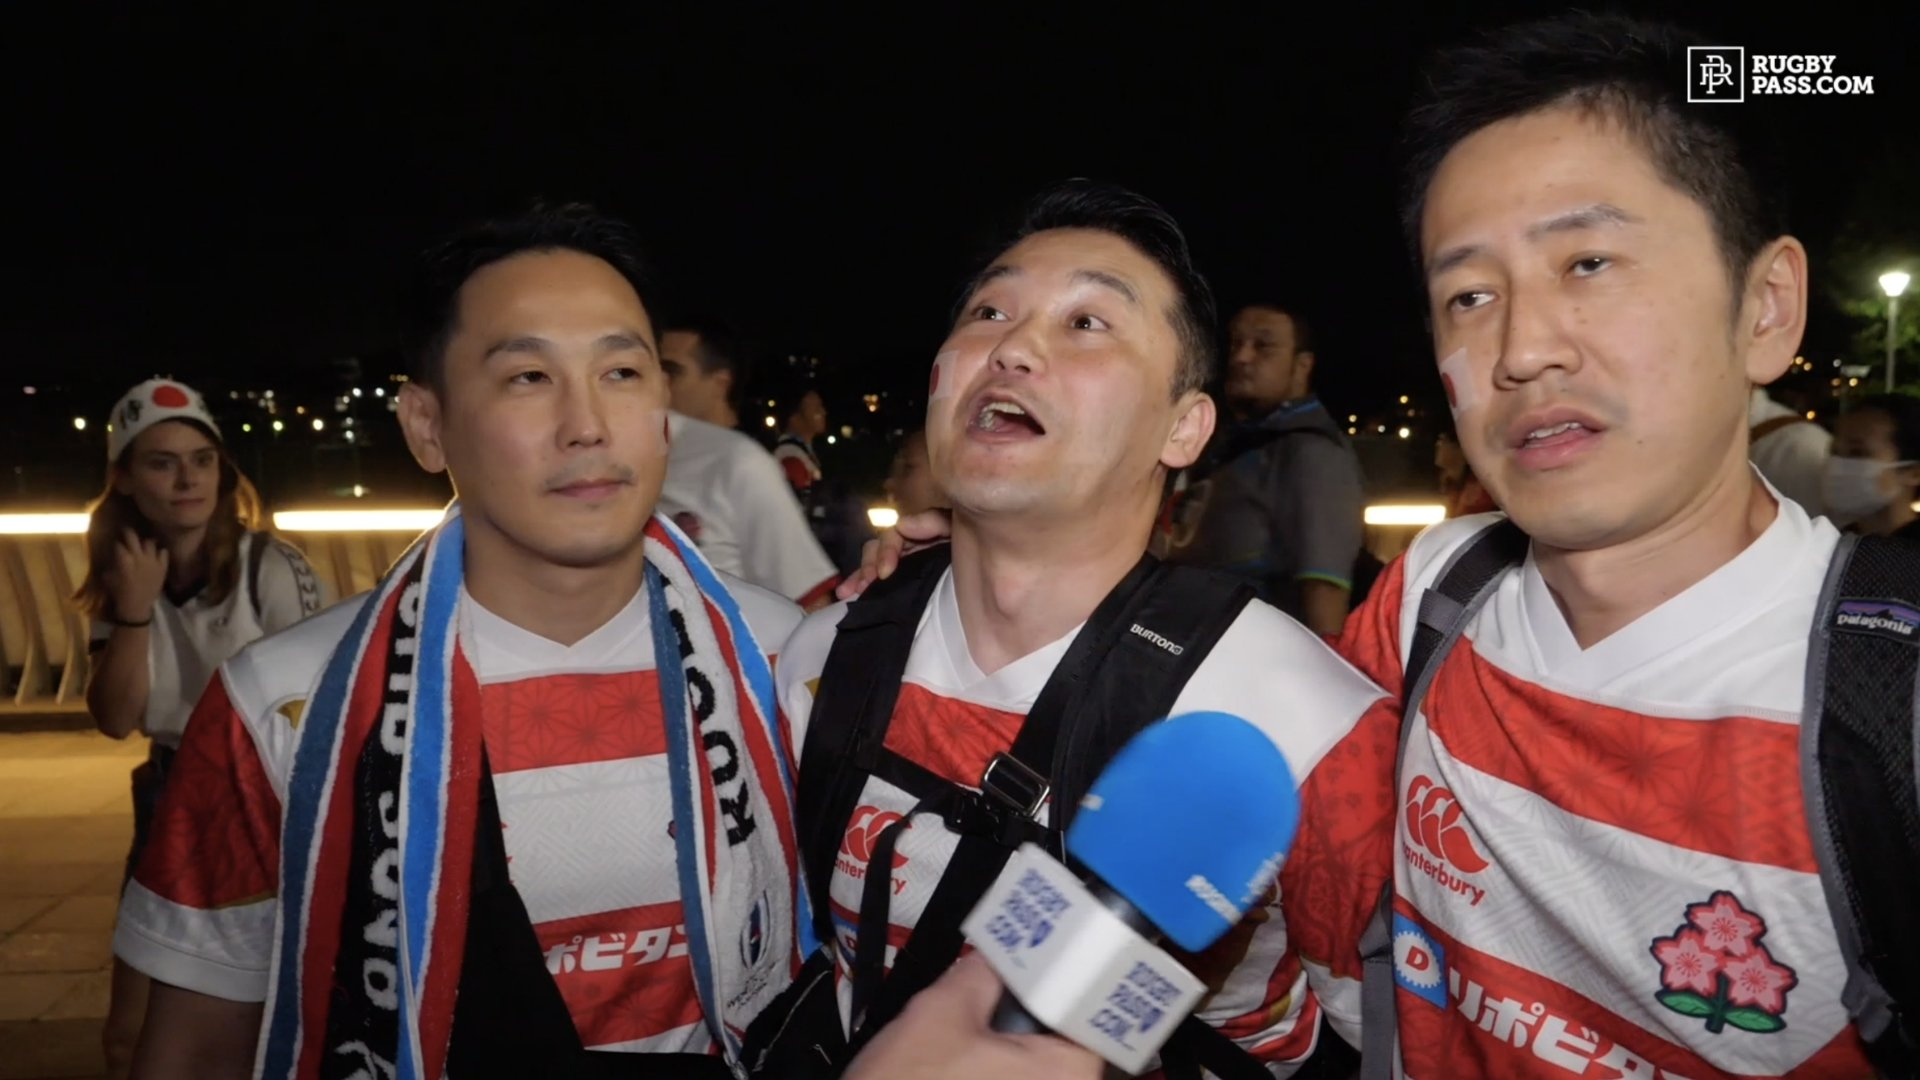 These 3 Japanese fans have everyone talking with their hilarious post-match interview